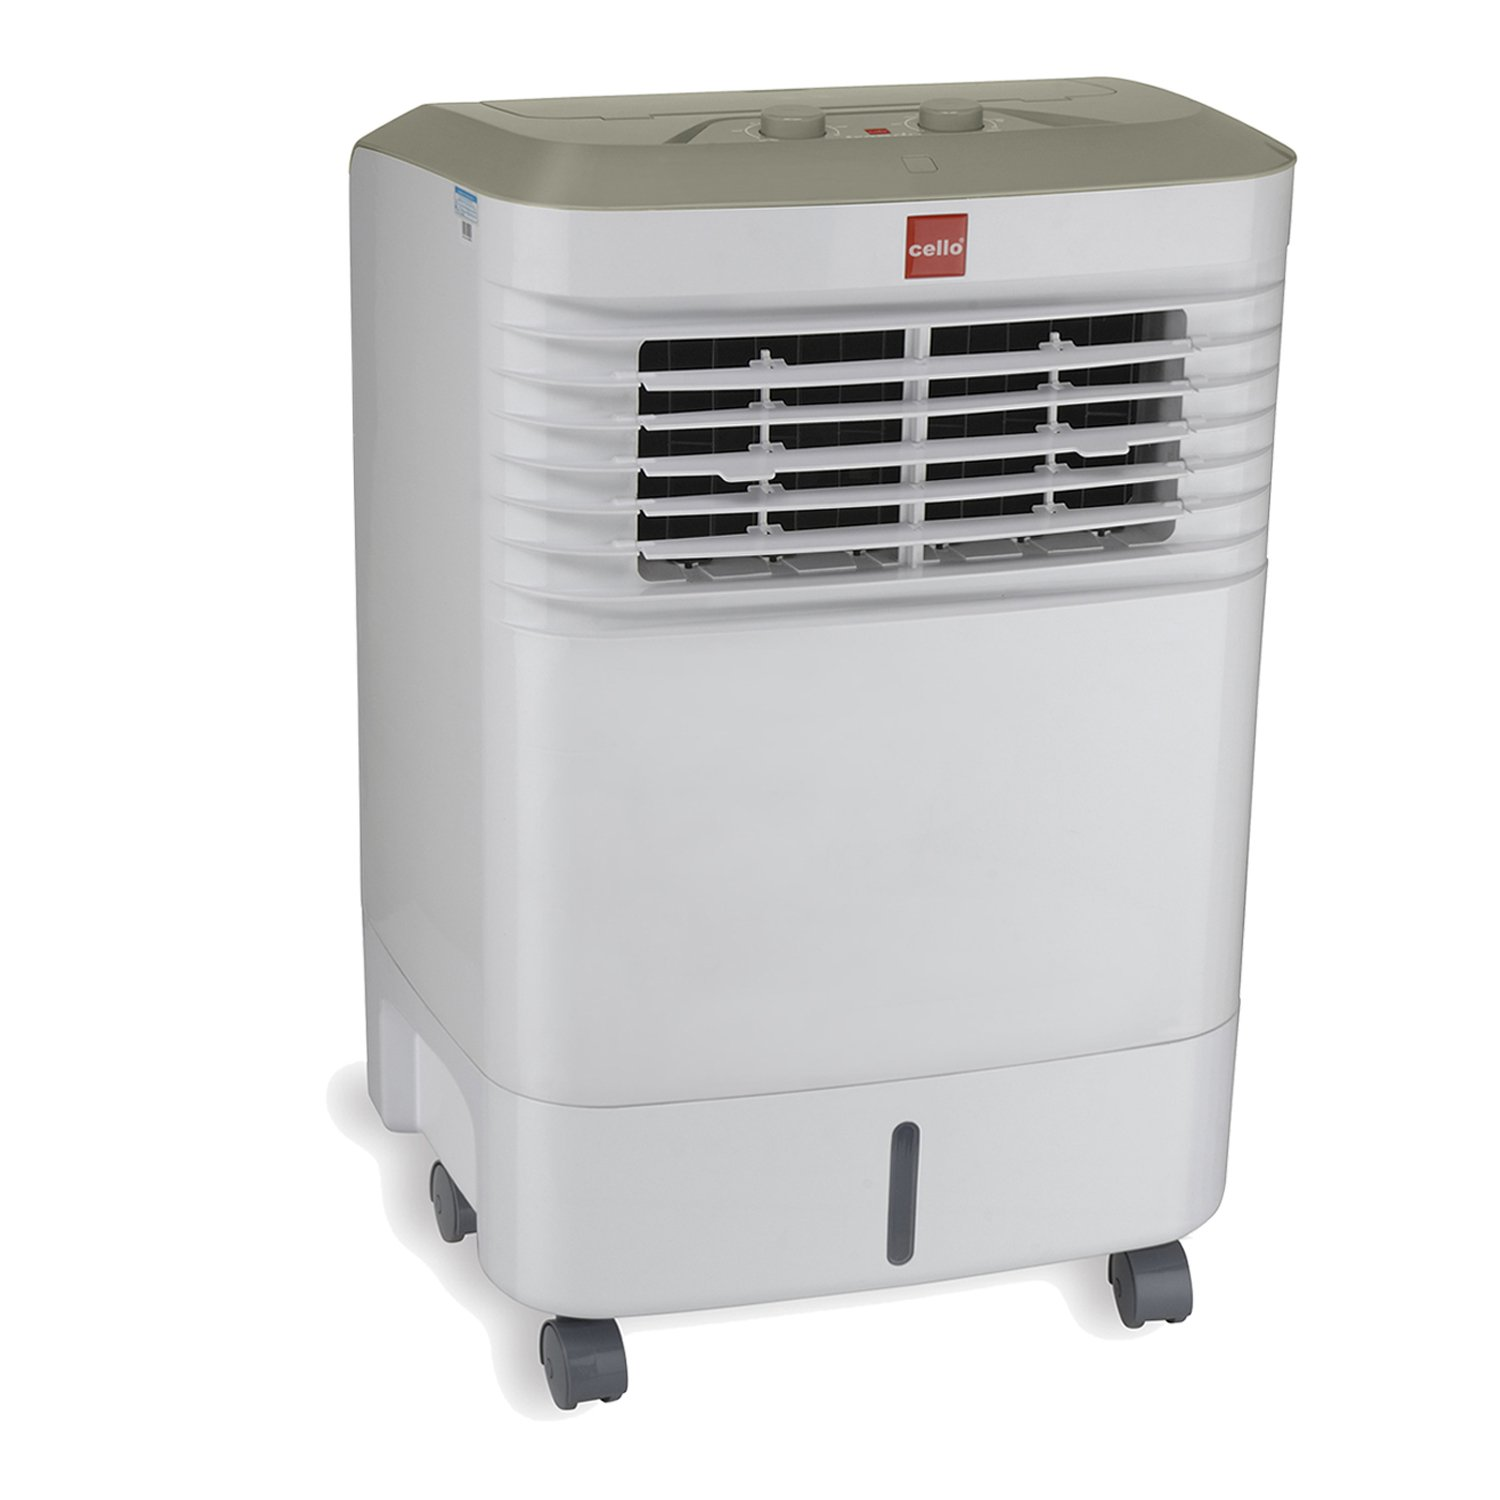 Best Personal Air Cooler in India